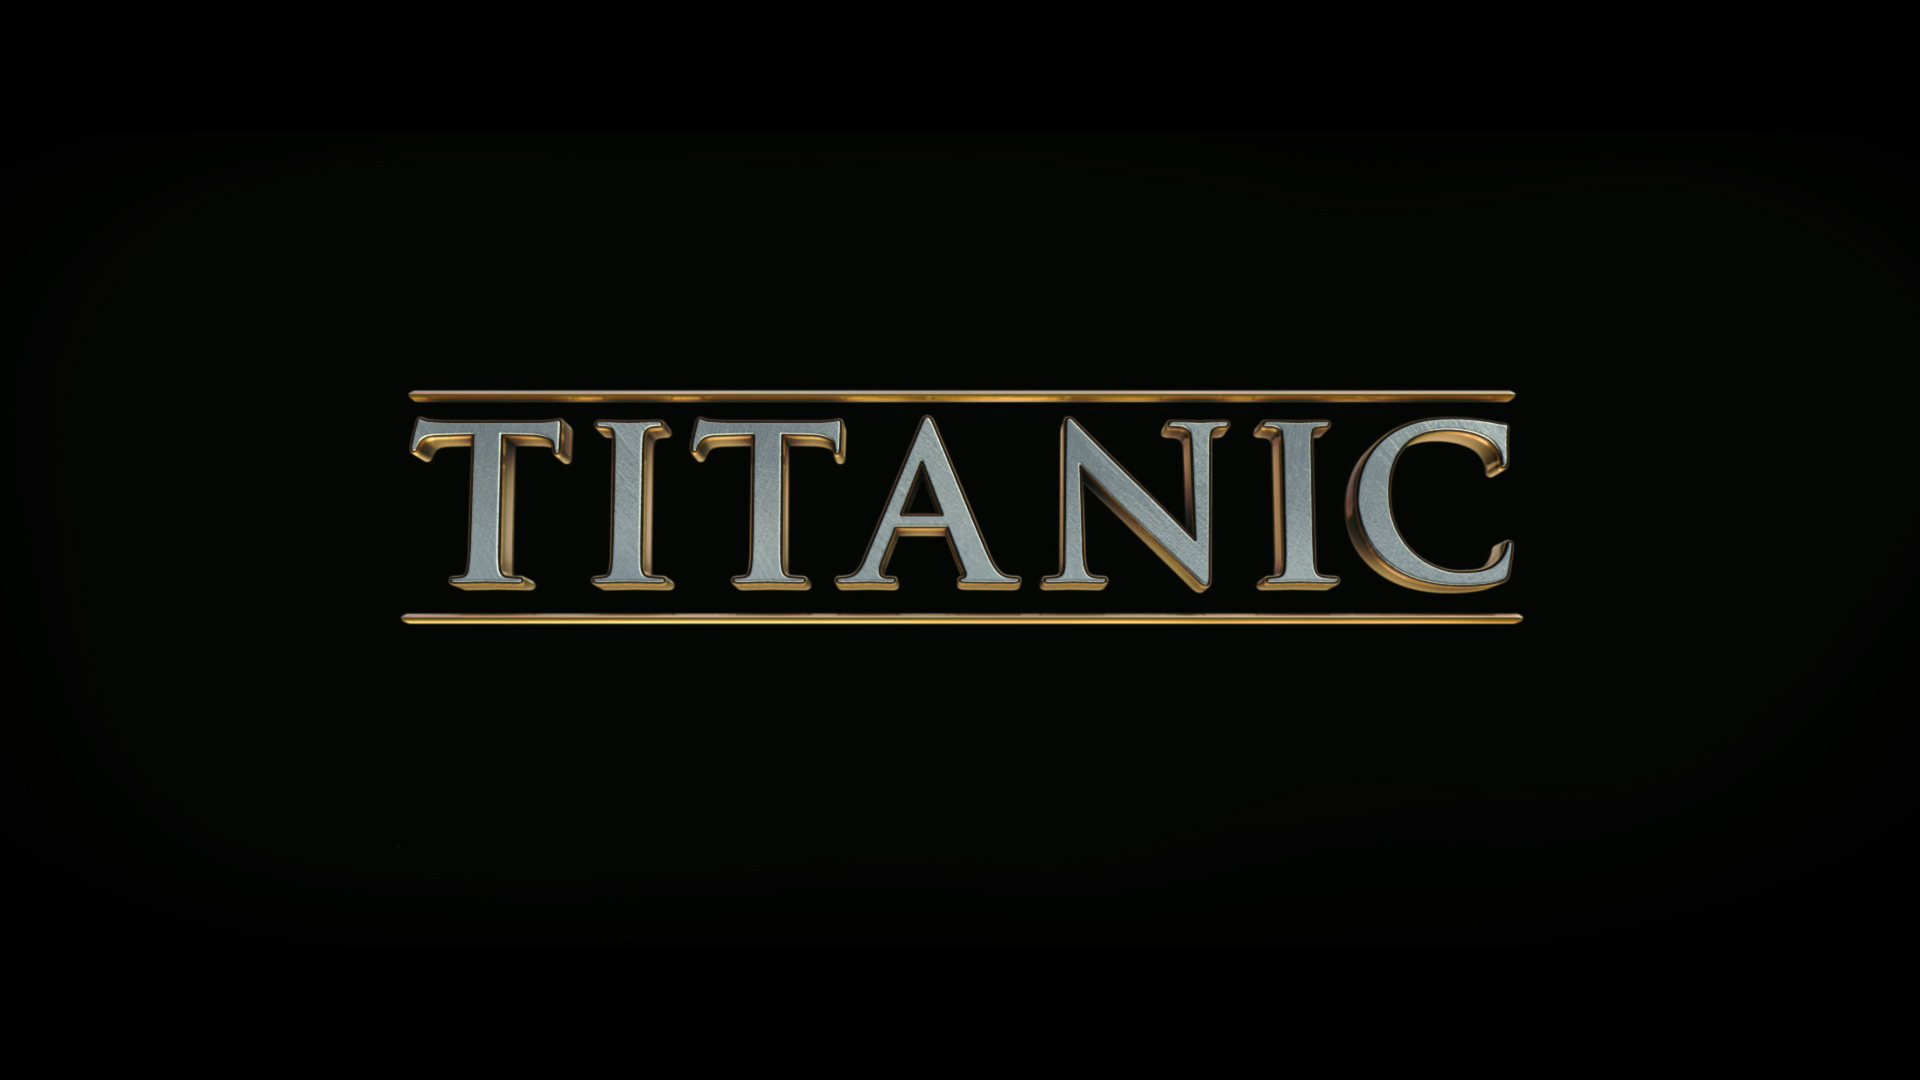 Titanic 3D wallpaper 4